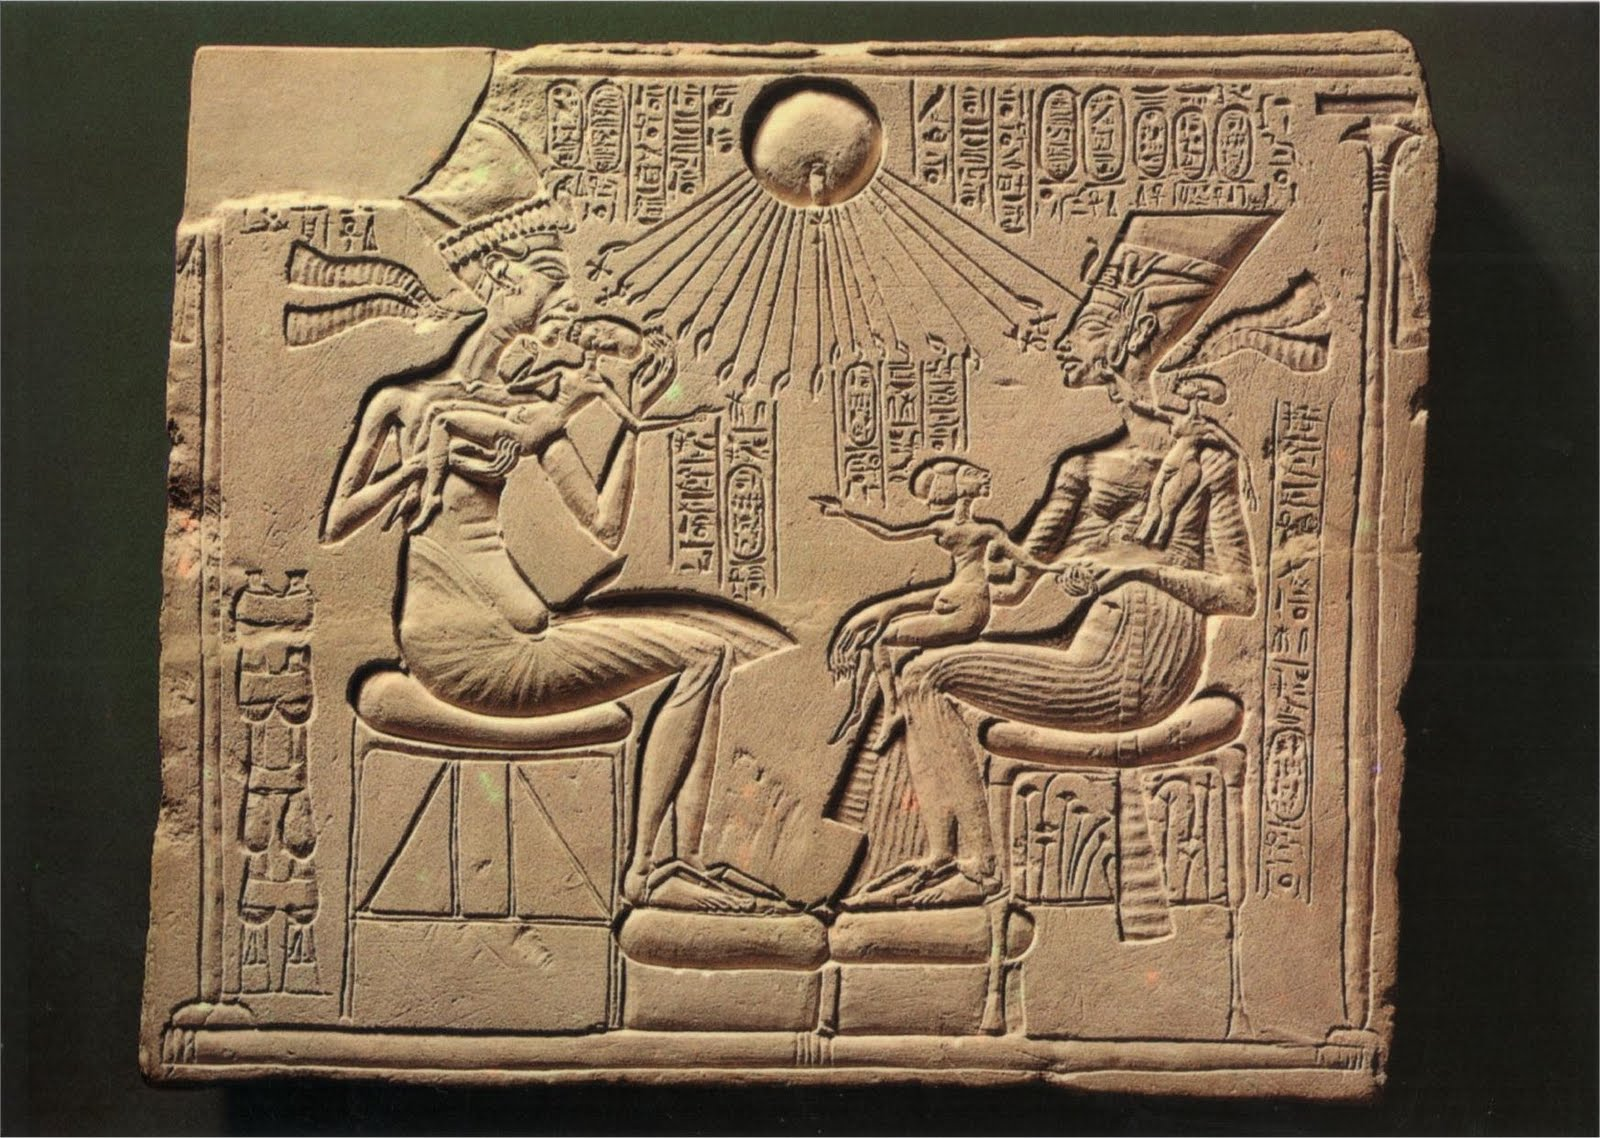 4. Relieve Amenofis IV y Nefertiti